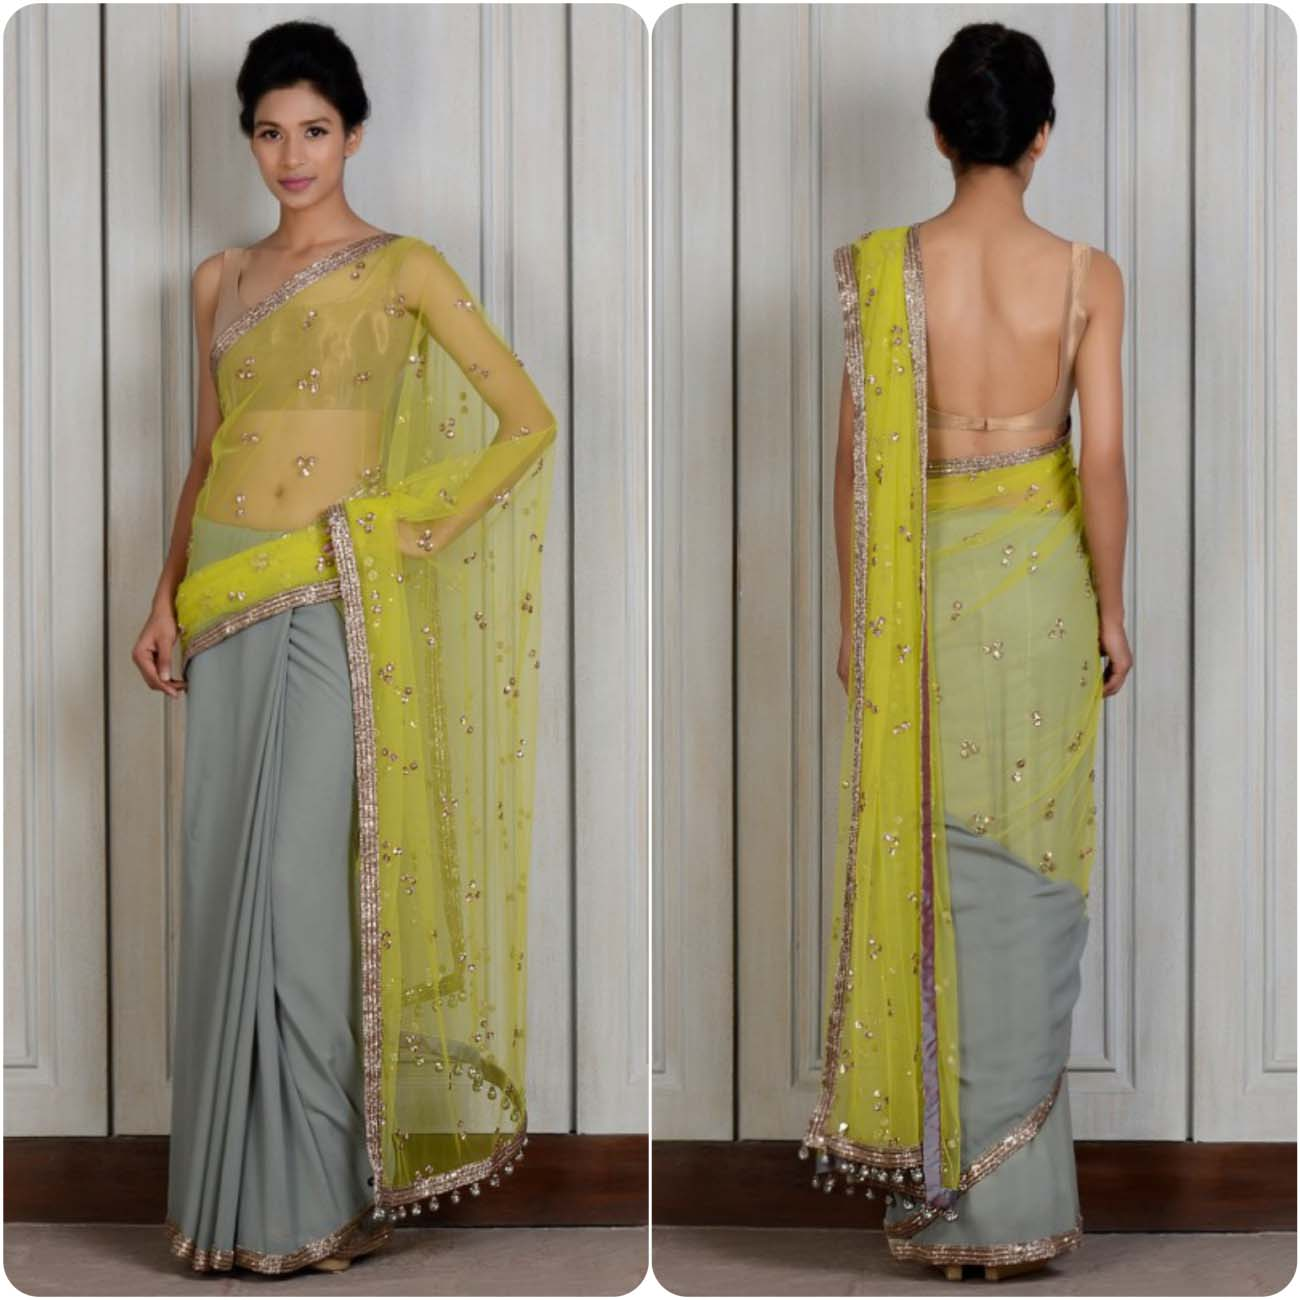 Designer Catalog: Latest Sarees Collection By Manish Malhotra